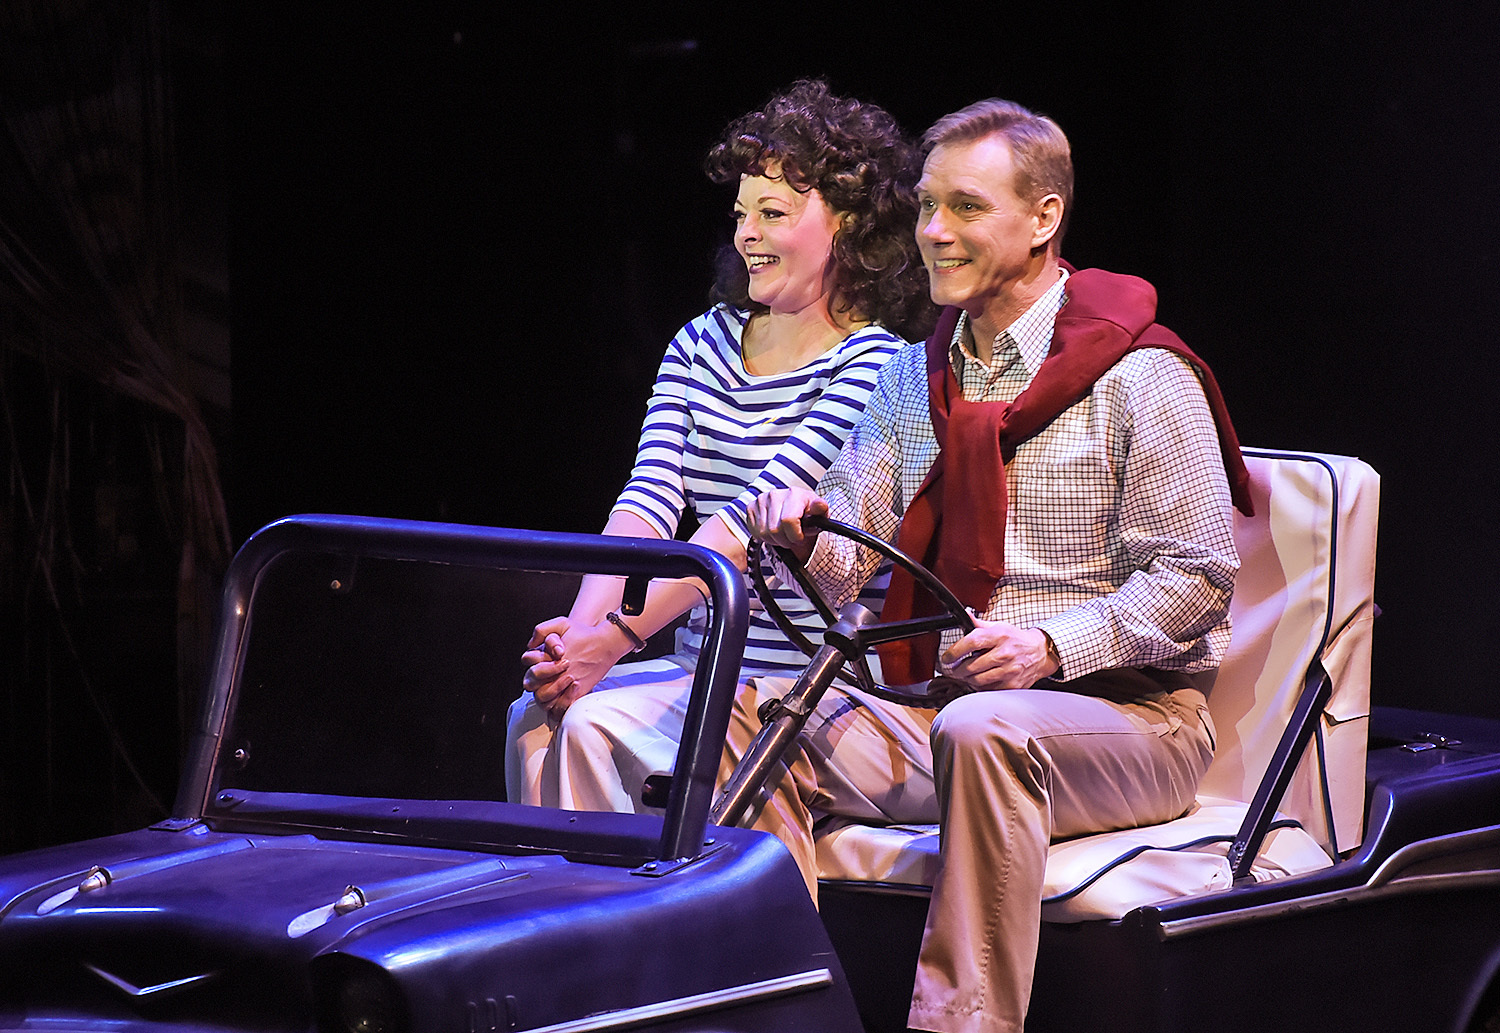 BWW Review: 1970s Rom Com Still Woos at Beef & Boards Dinner Theatre